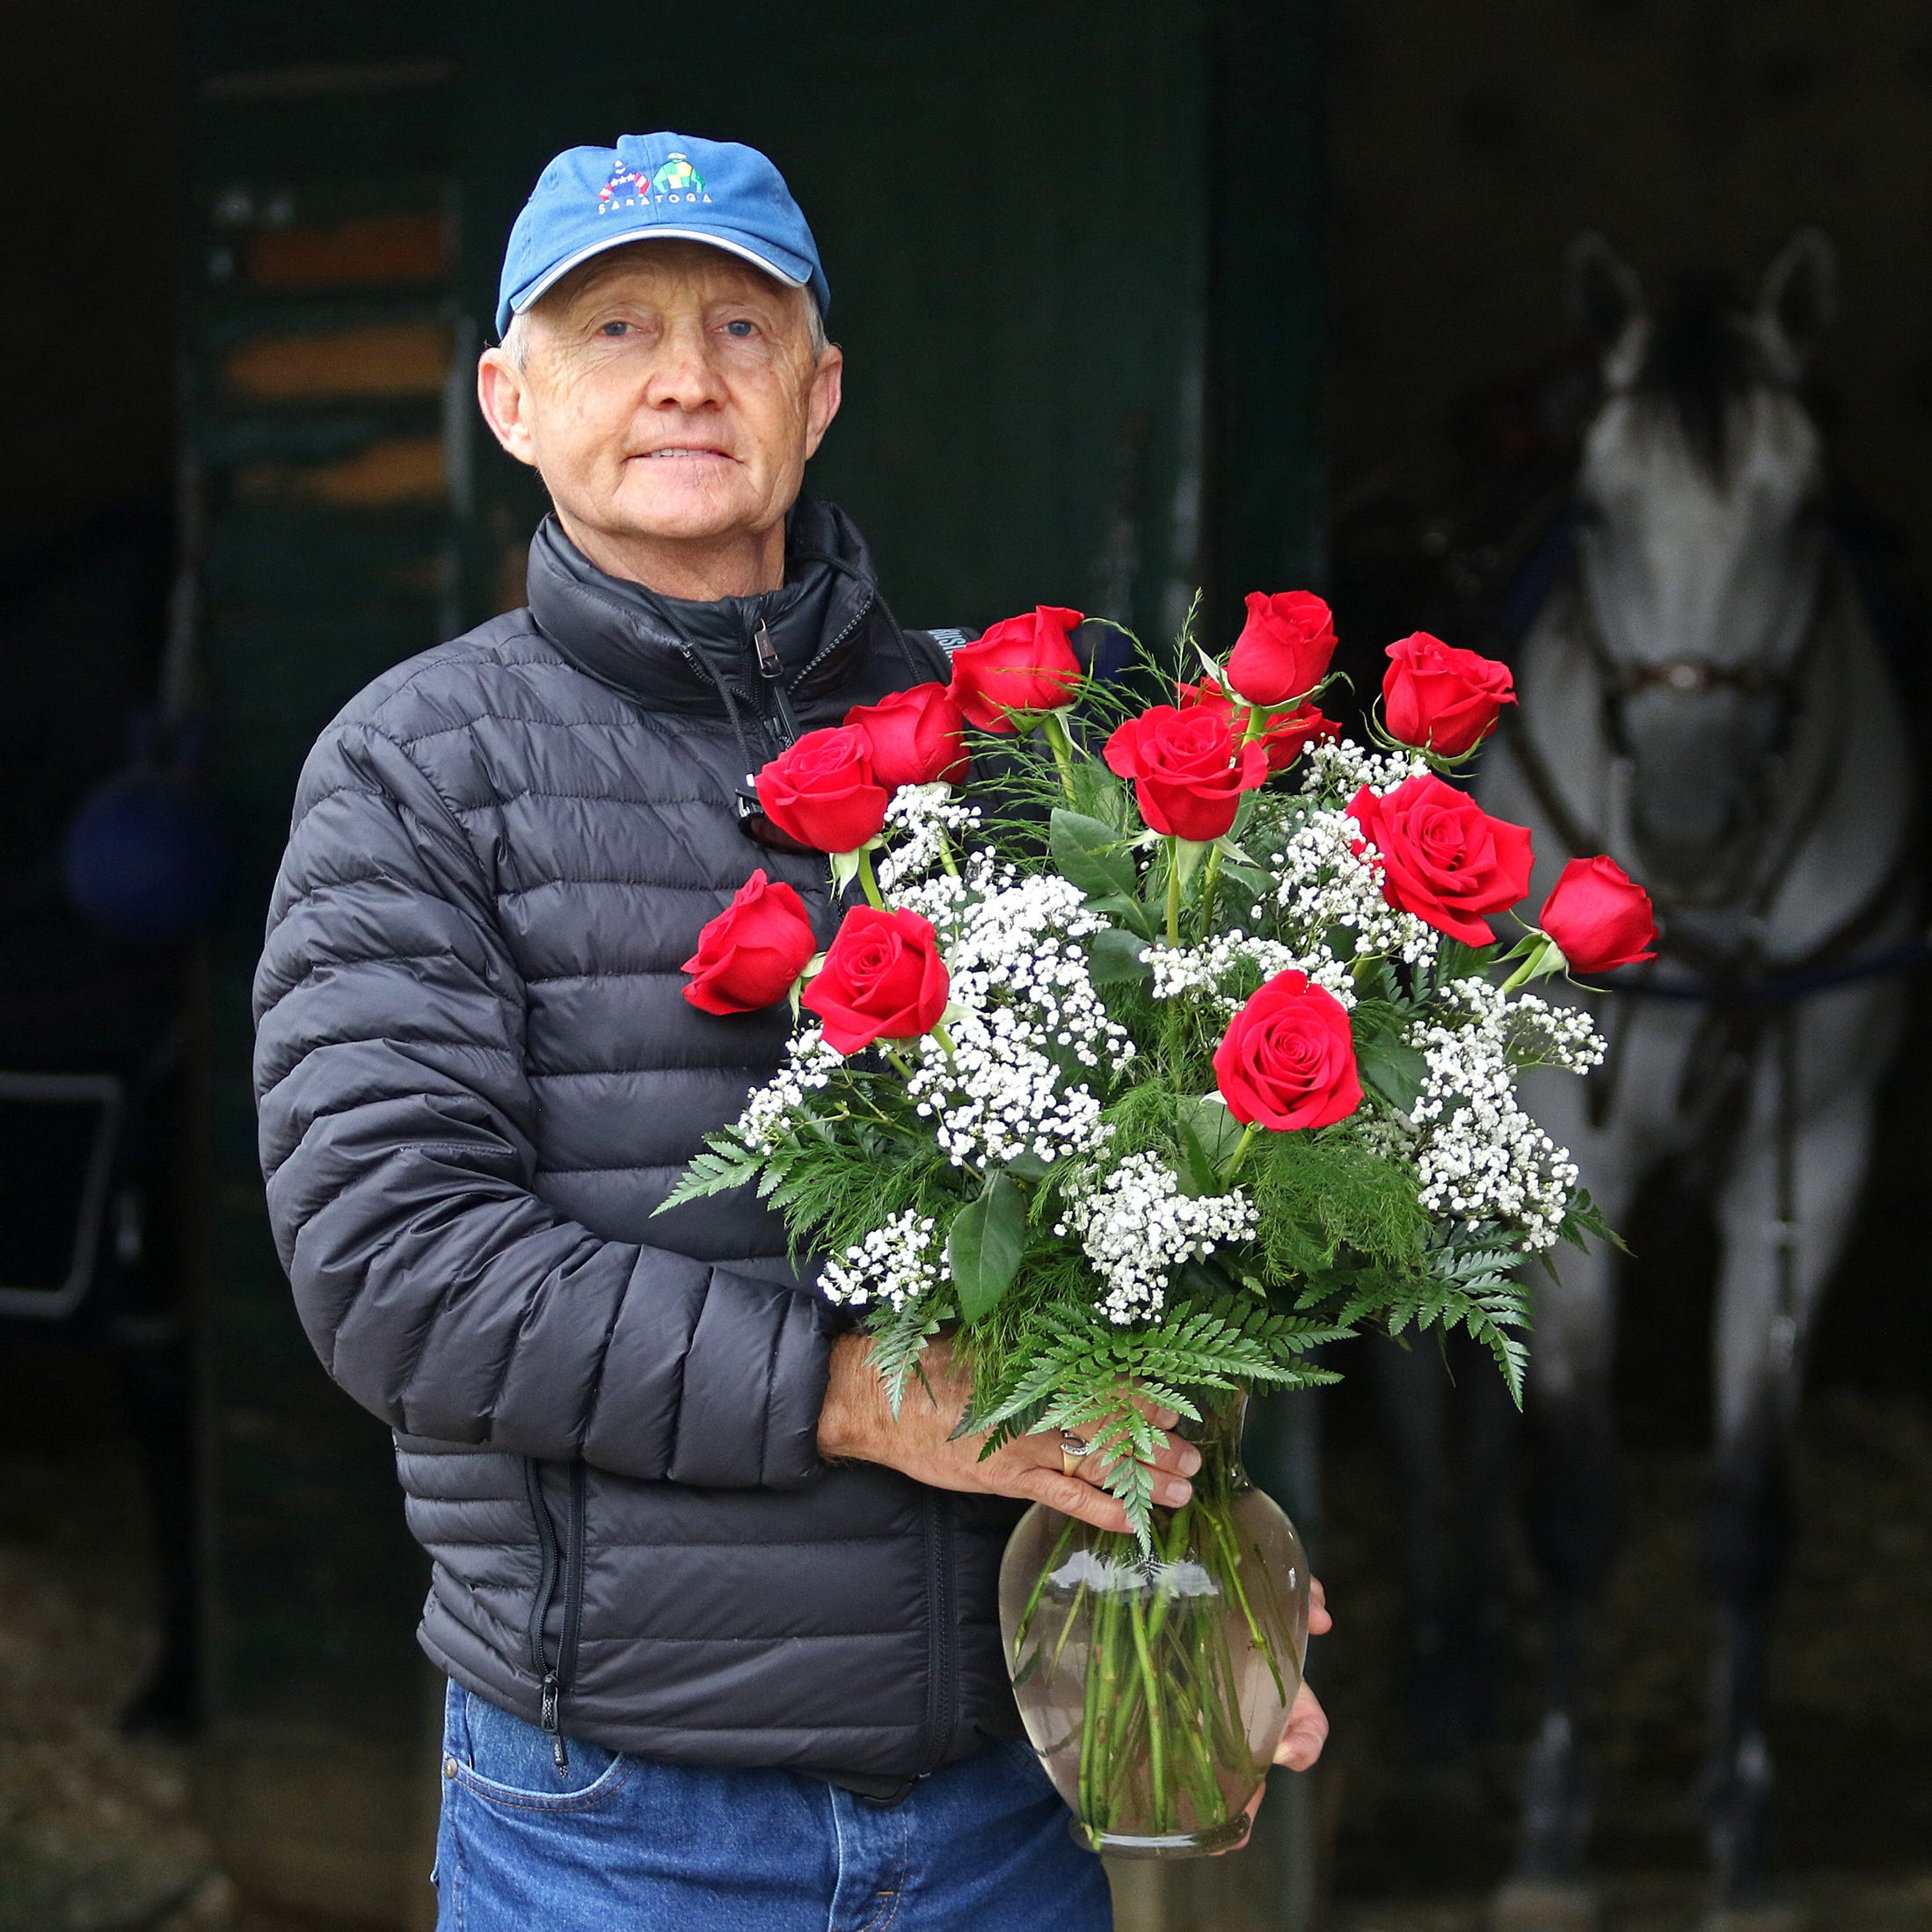 Maximum Security, trainer finally get roses after Kentucky Derby fiasco